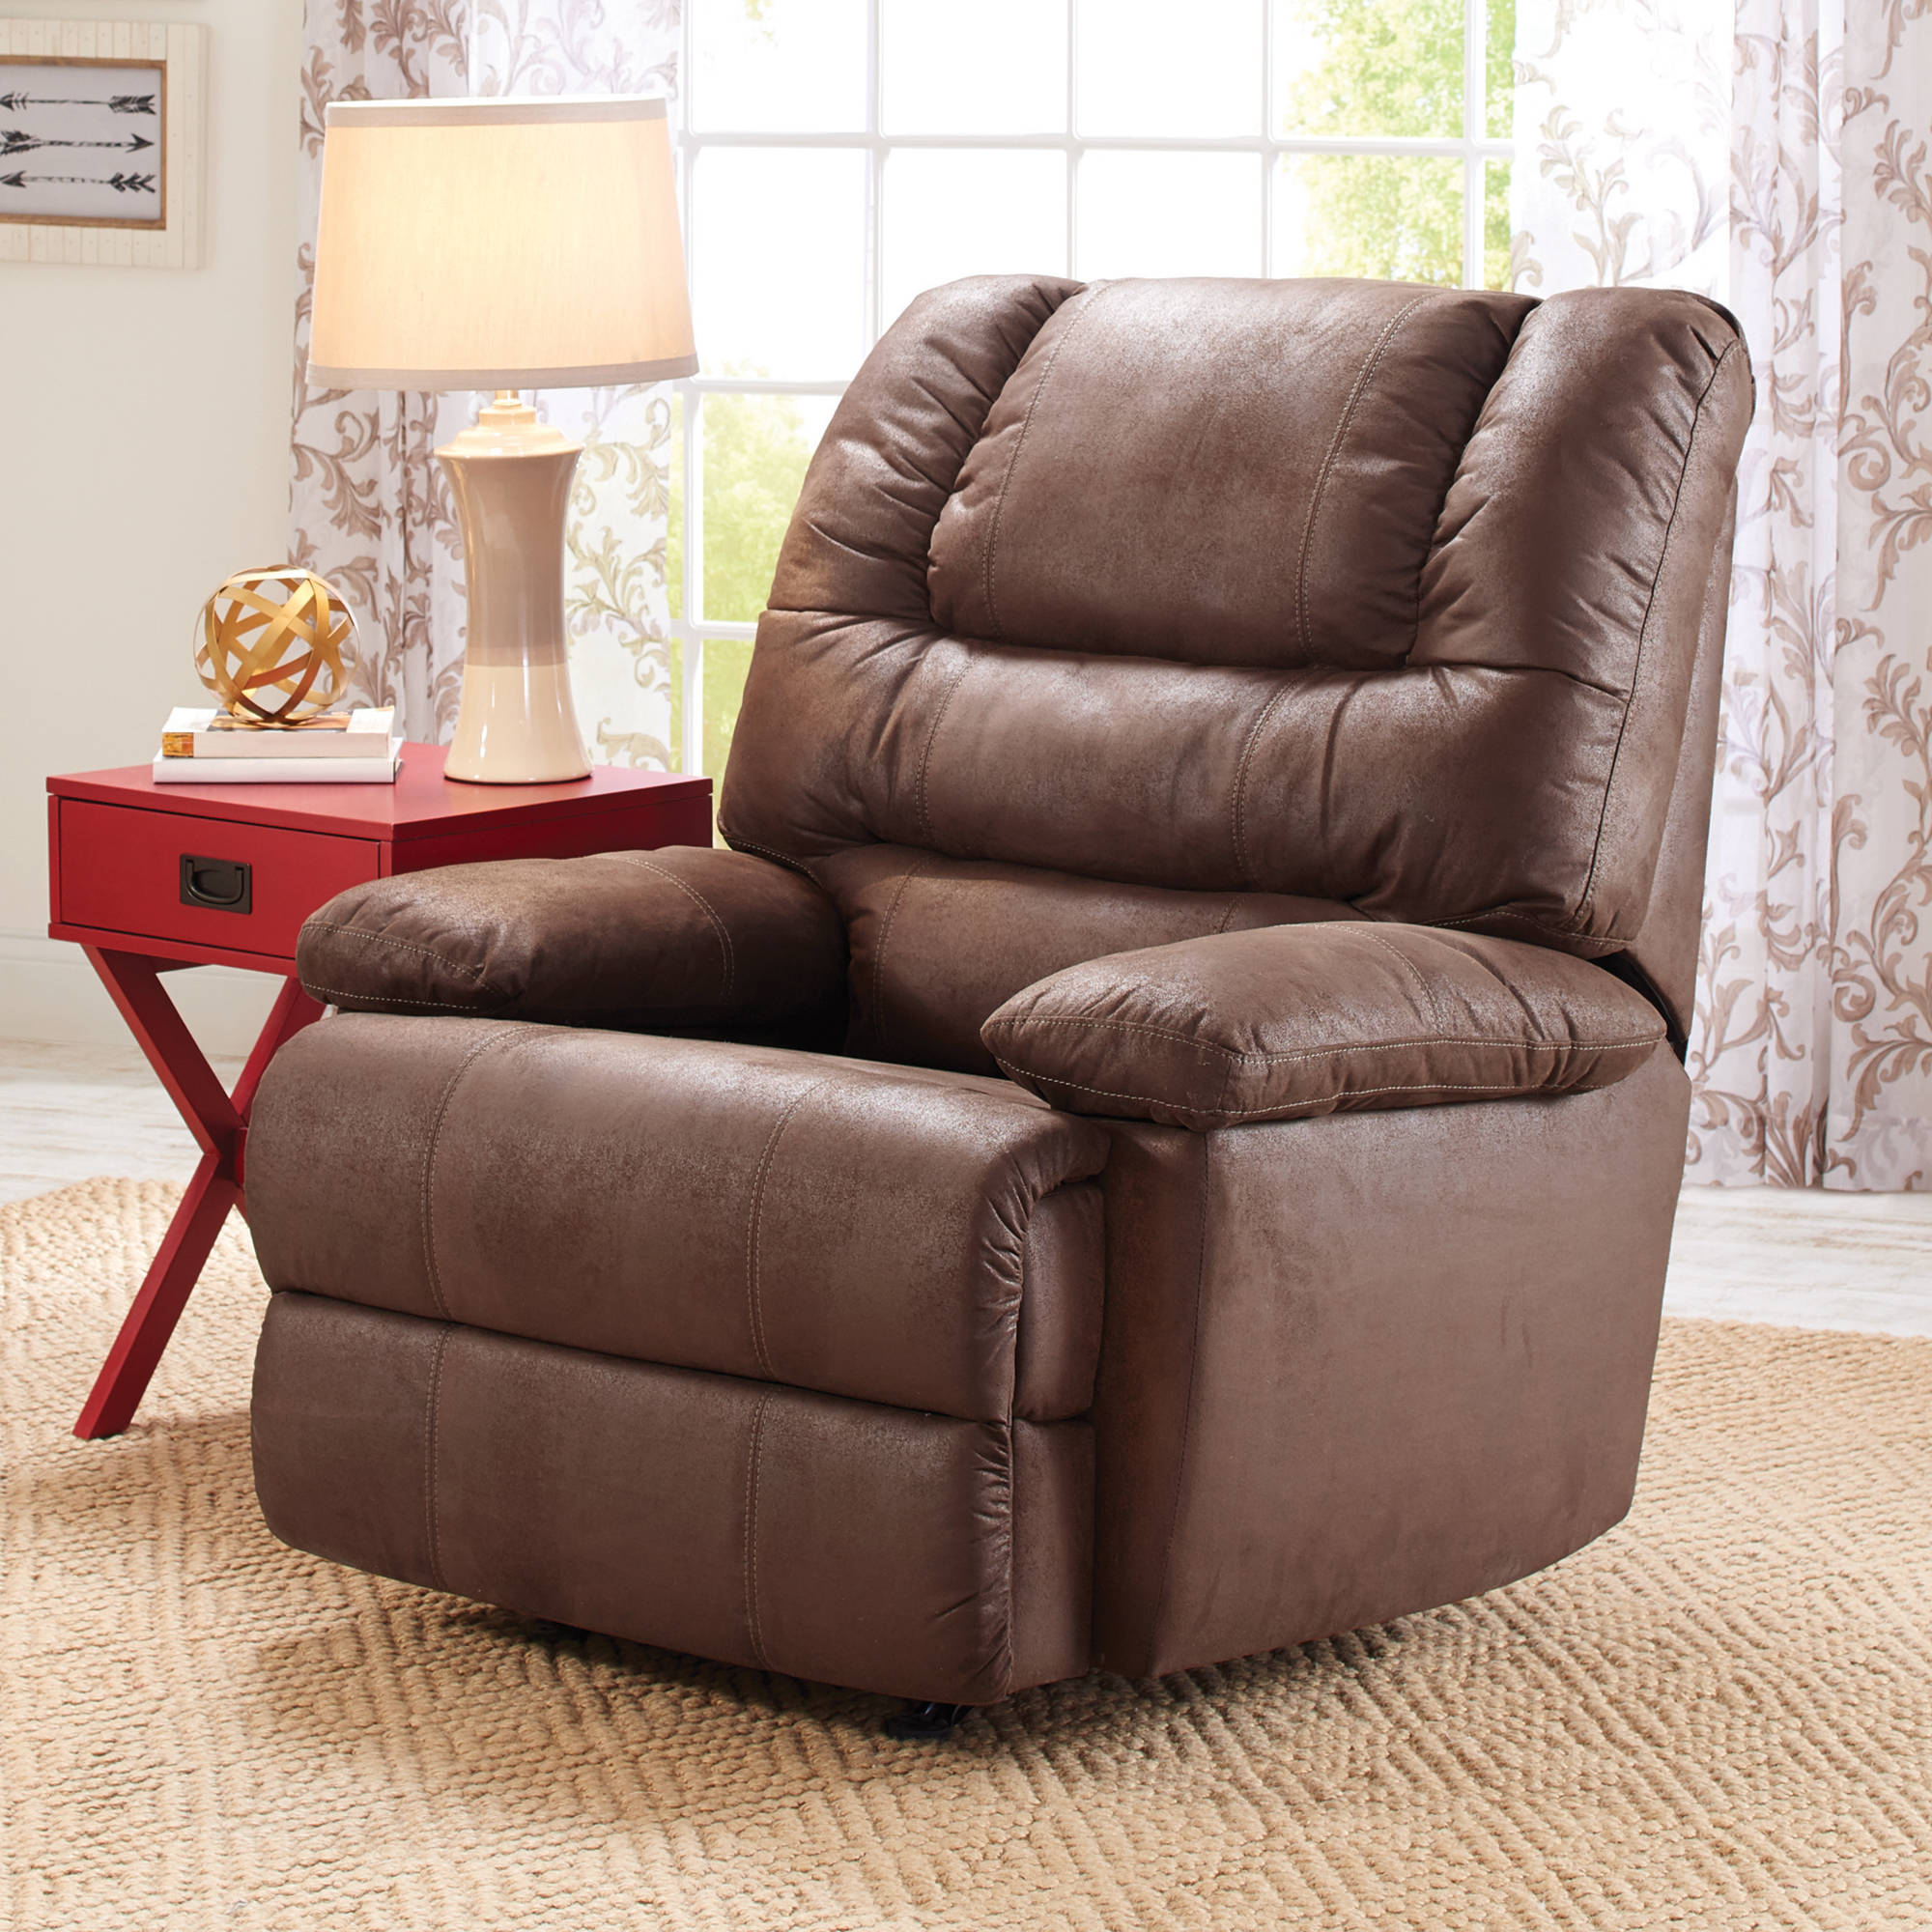 better homes and gardens deluxe recliner - walmart